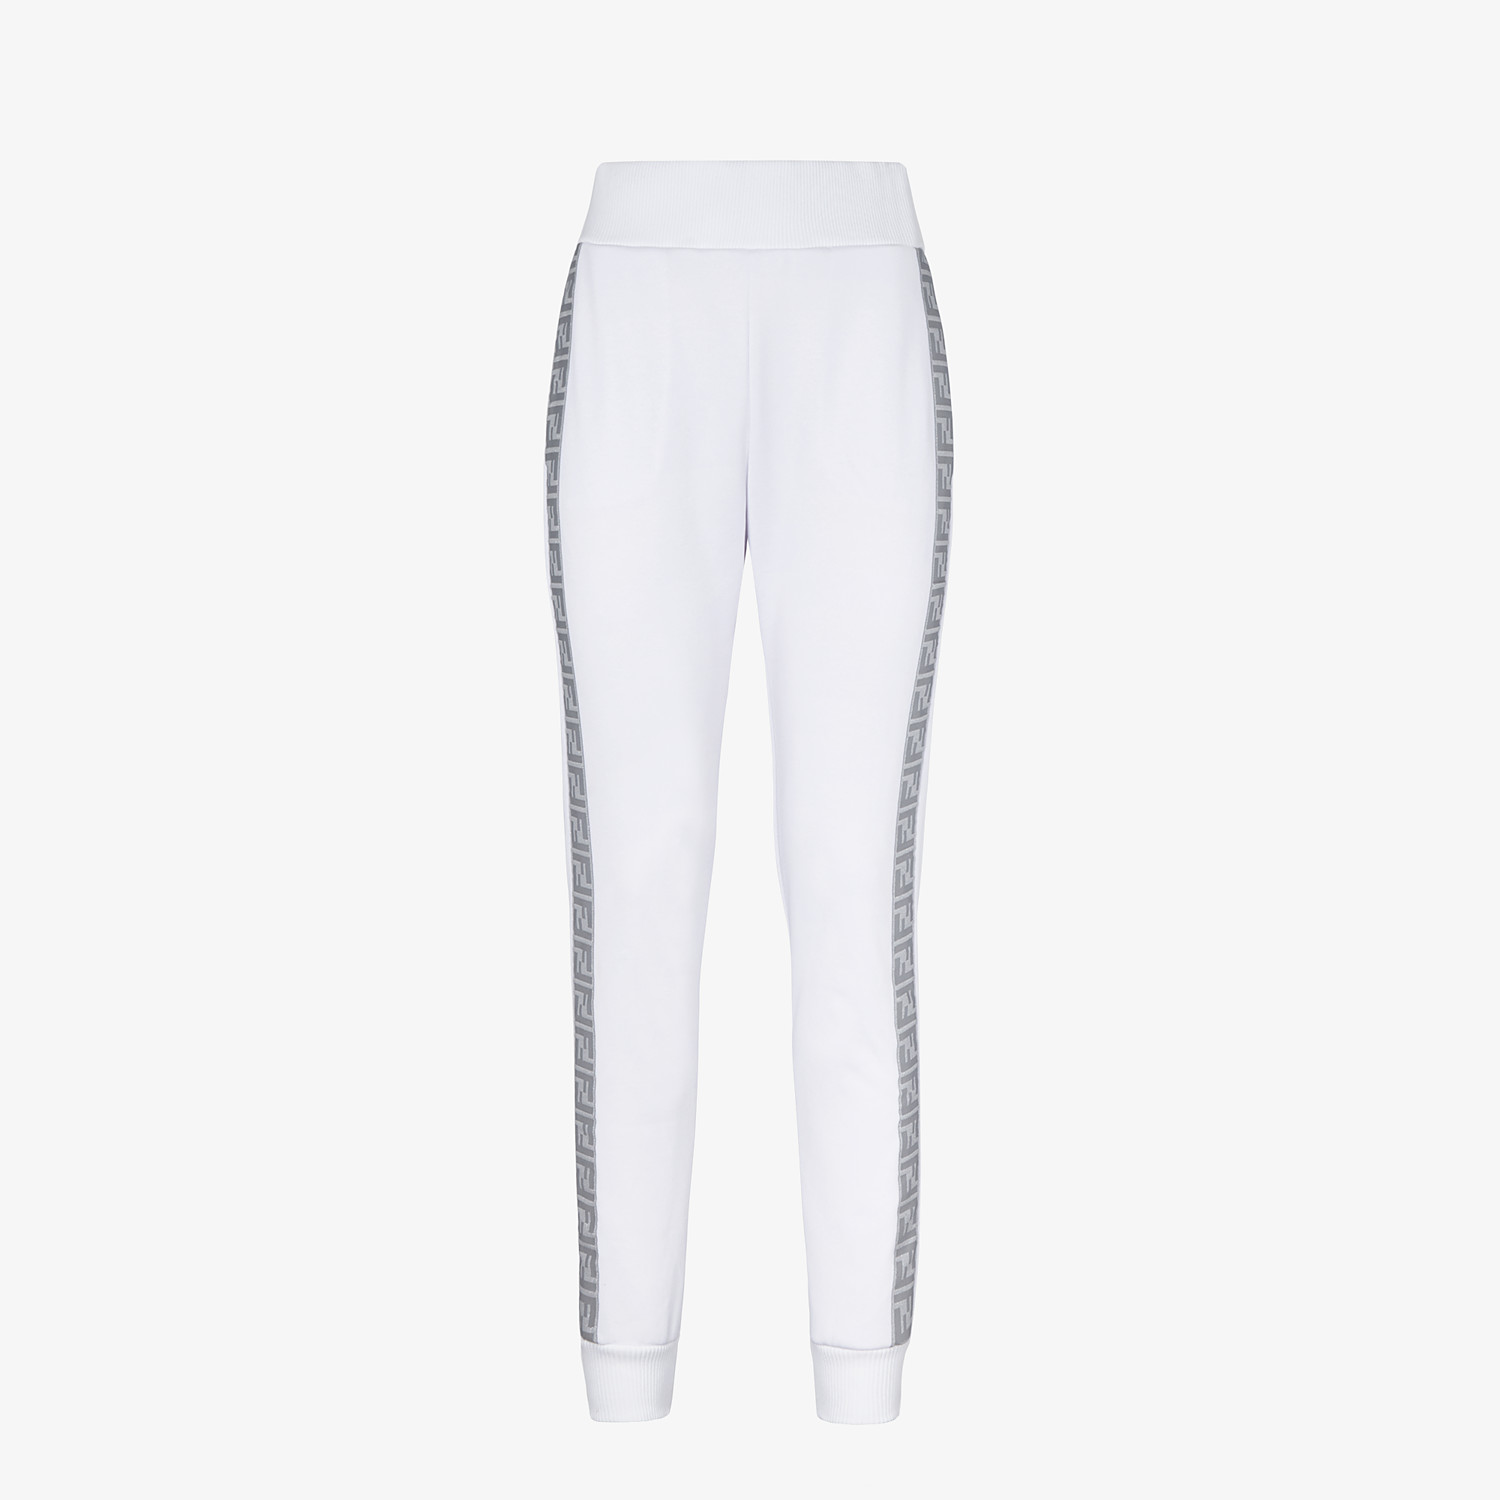 FENDI PANTS - White jersey jogging pants - view 1 detail